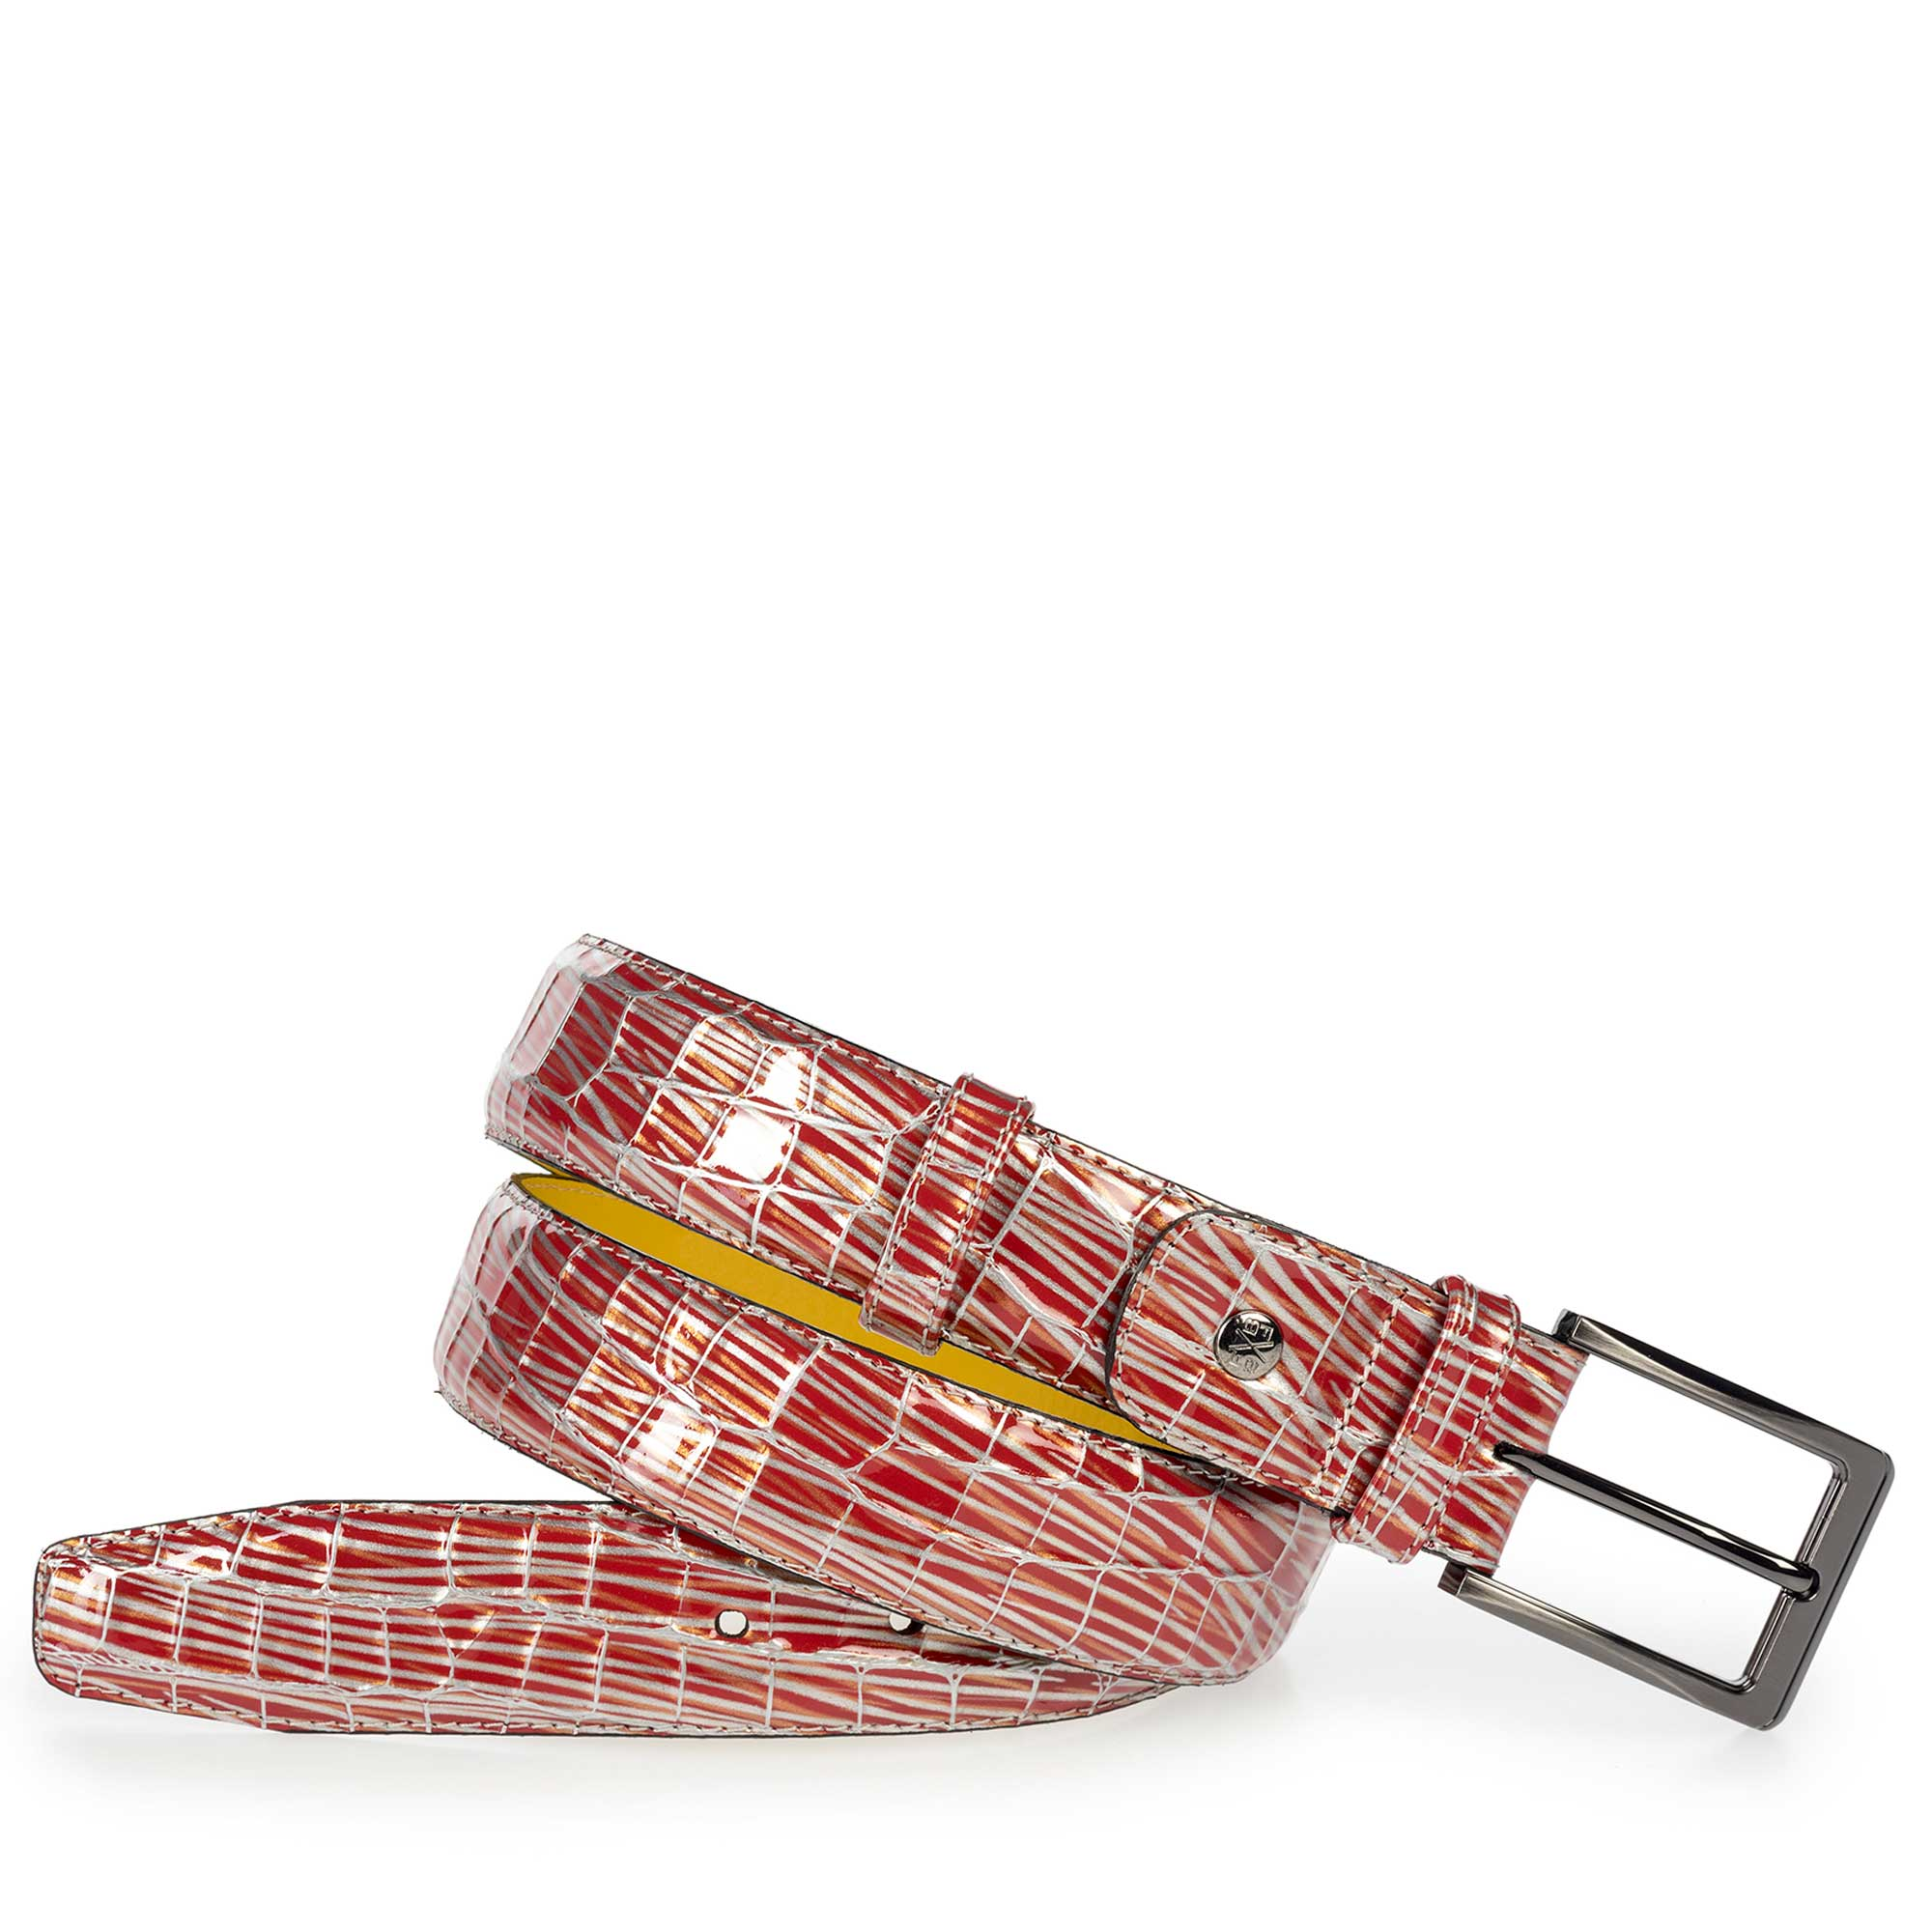 75182/07 - Red patent leather belt with print